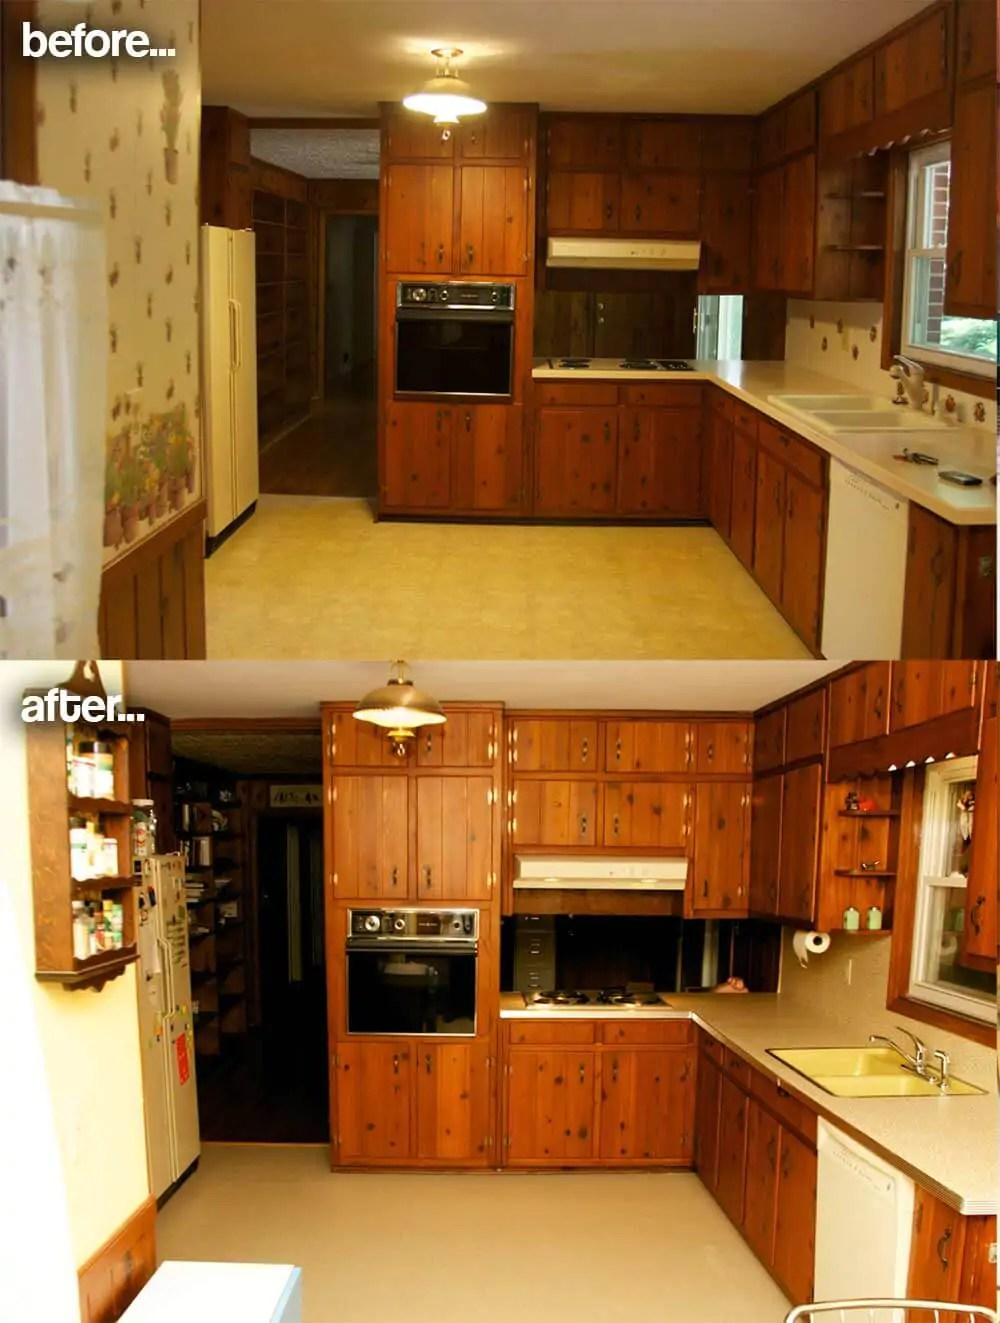 Ambers 1961 knotty pine kitchen before and after Retro